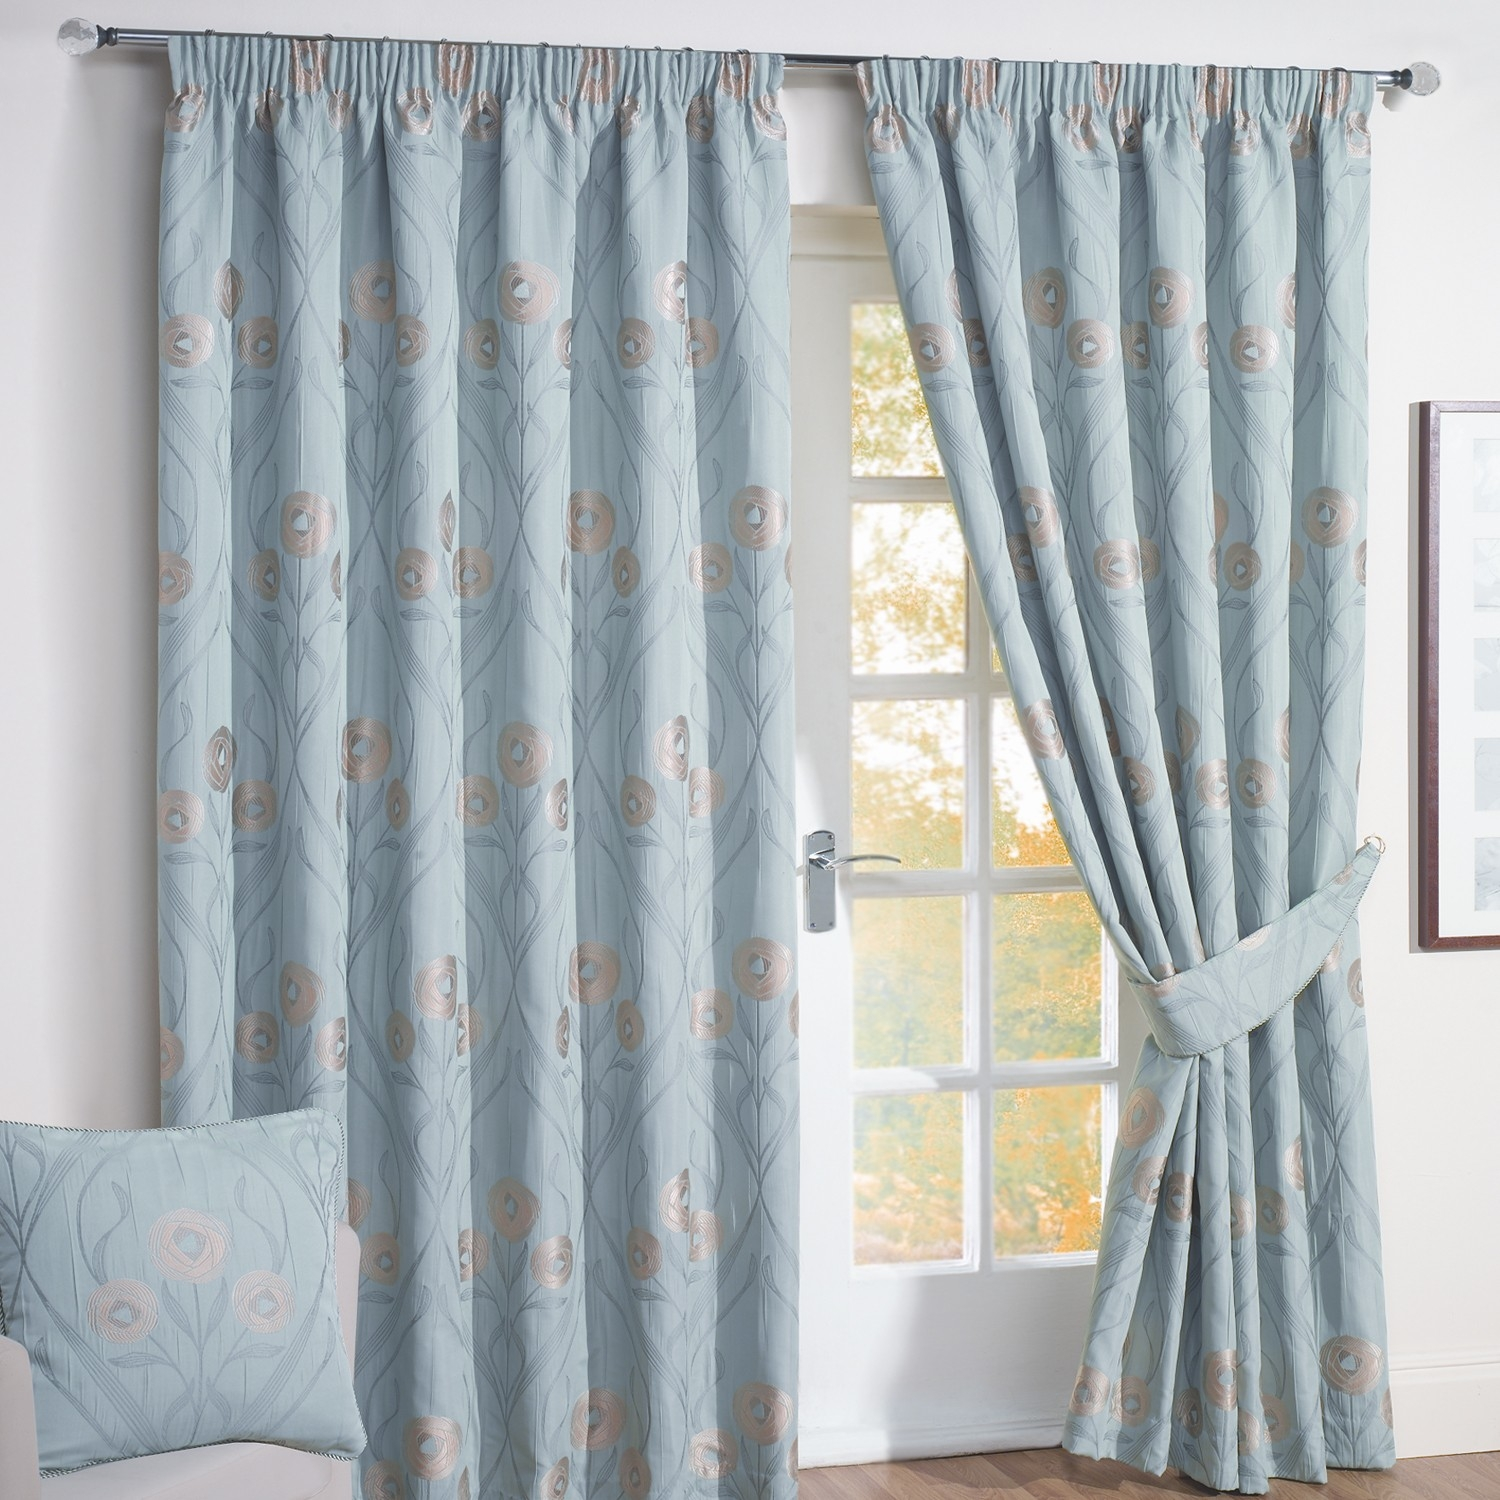 Montrose Duck Egg Blue Floral Jacquard Lined Curtains Pair Throughout Duck Egg Blue Blackout Curtains (View 11 of 15)